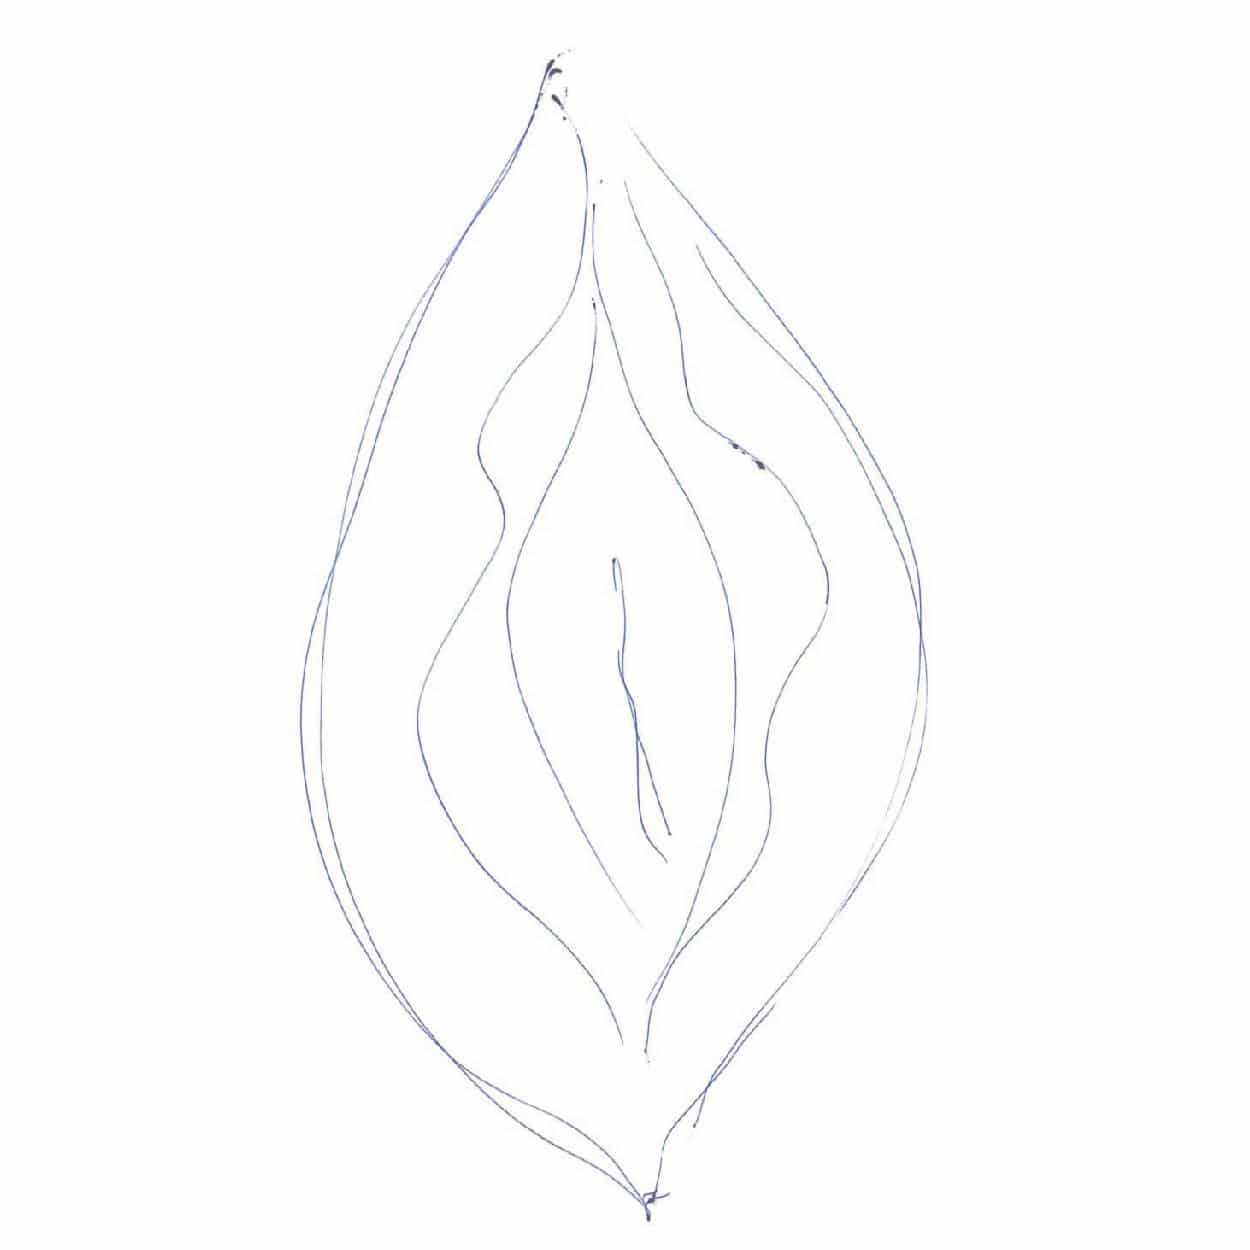 Beautiful vulva drawing